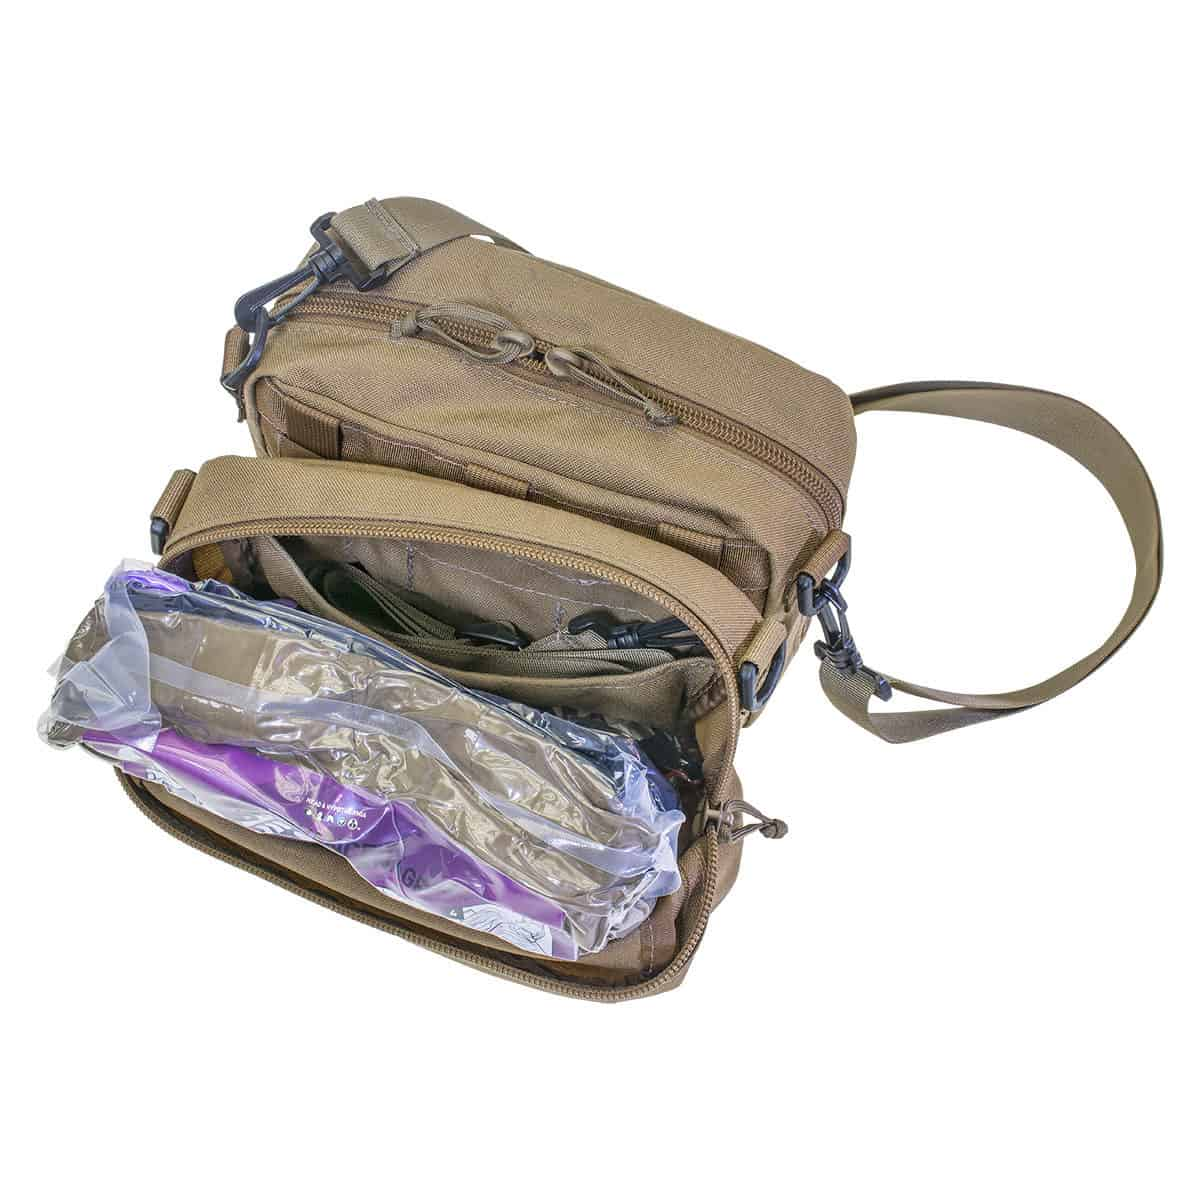 hawk carrier opened shoulder strap pocket